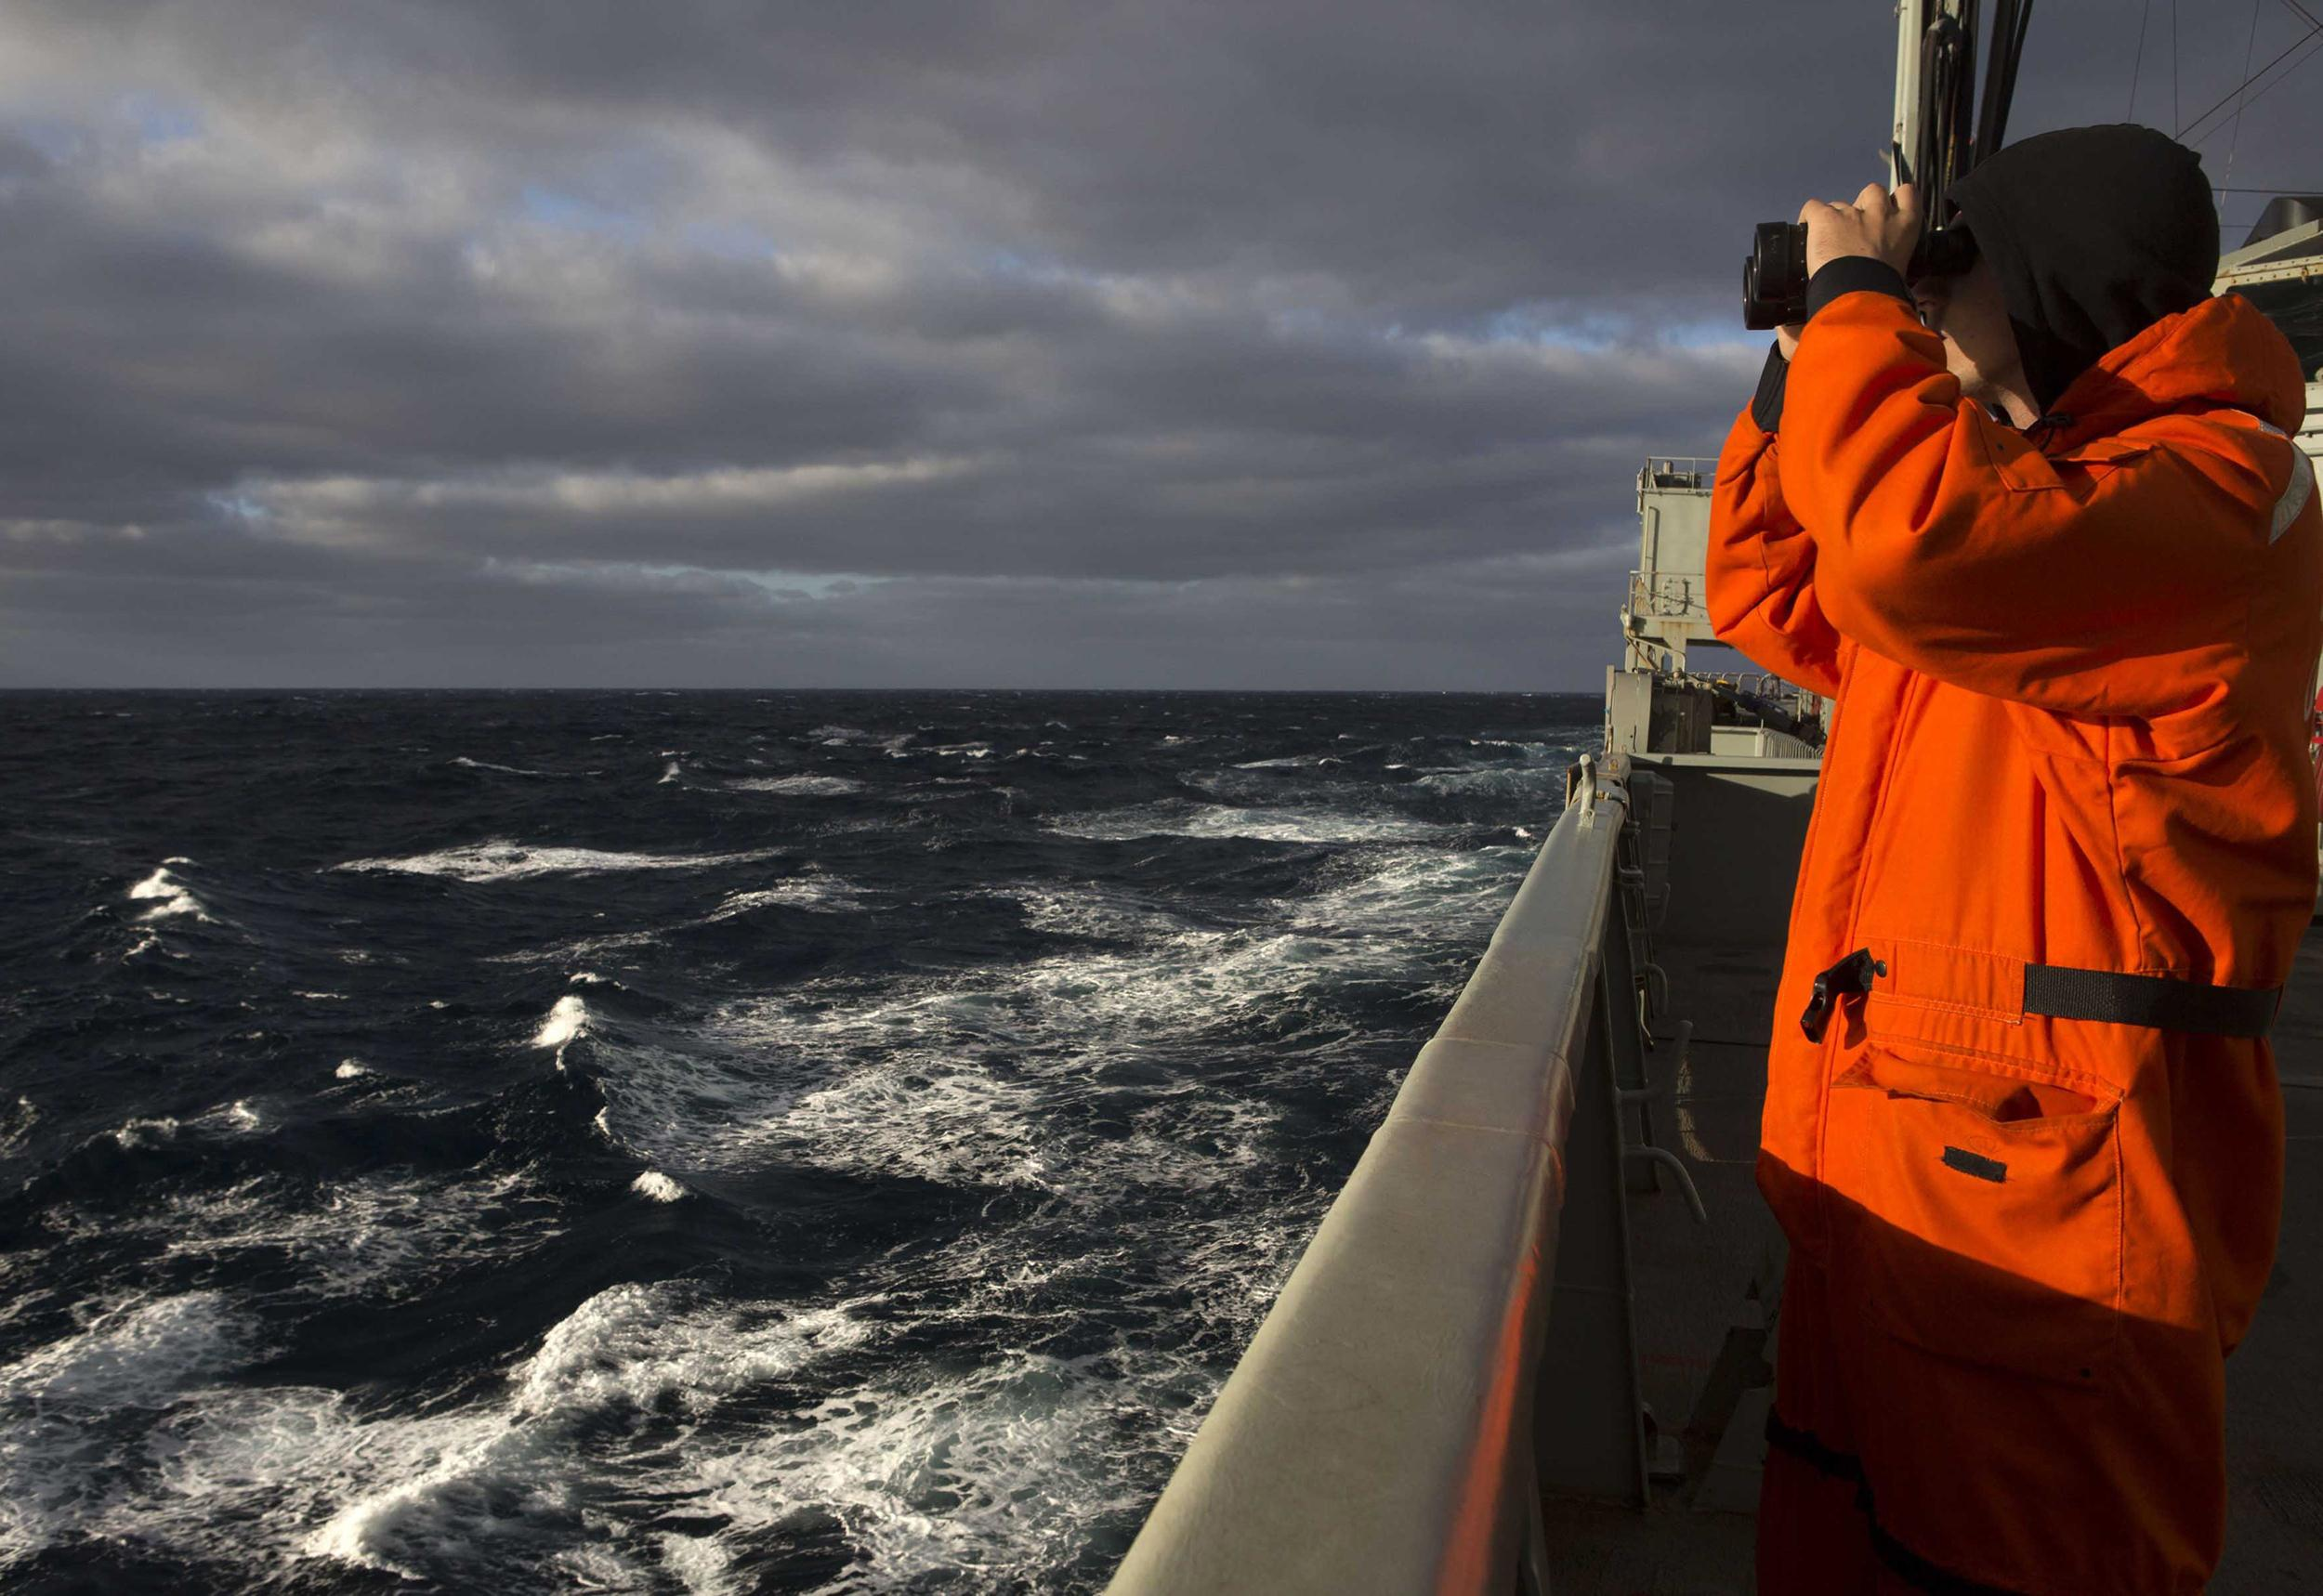 Image: Able Seaman Marine Technician Matthew Oxley keeping watch onboard the HMAS Success